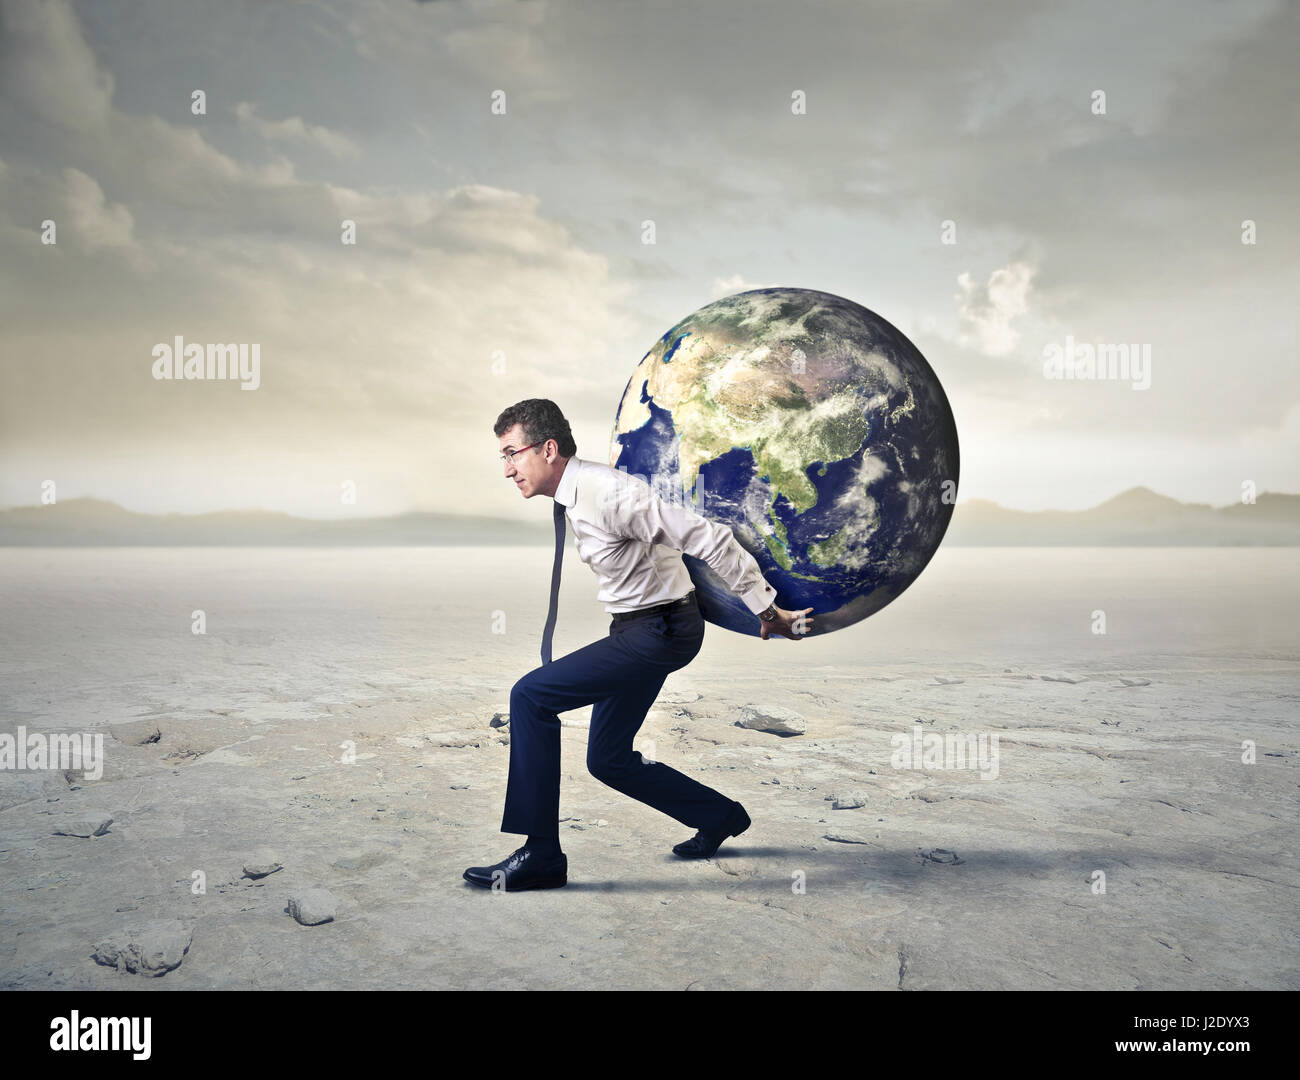 businessman carrying earth on his back stock photo 139219531 alamy